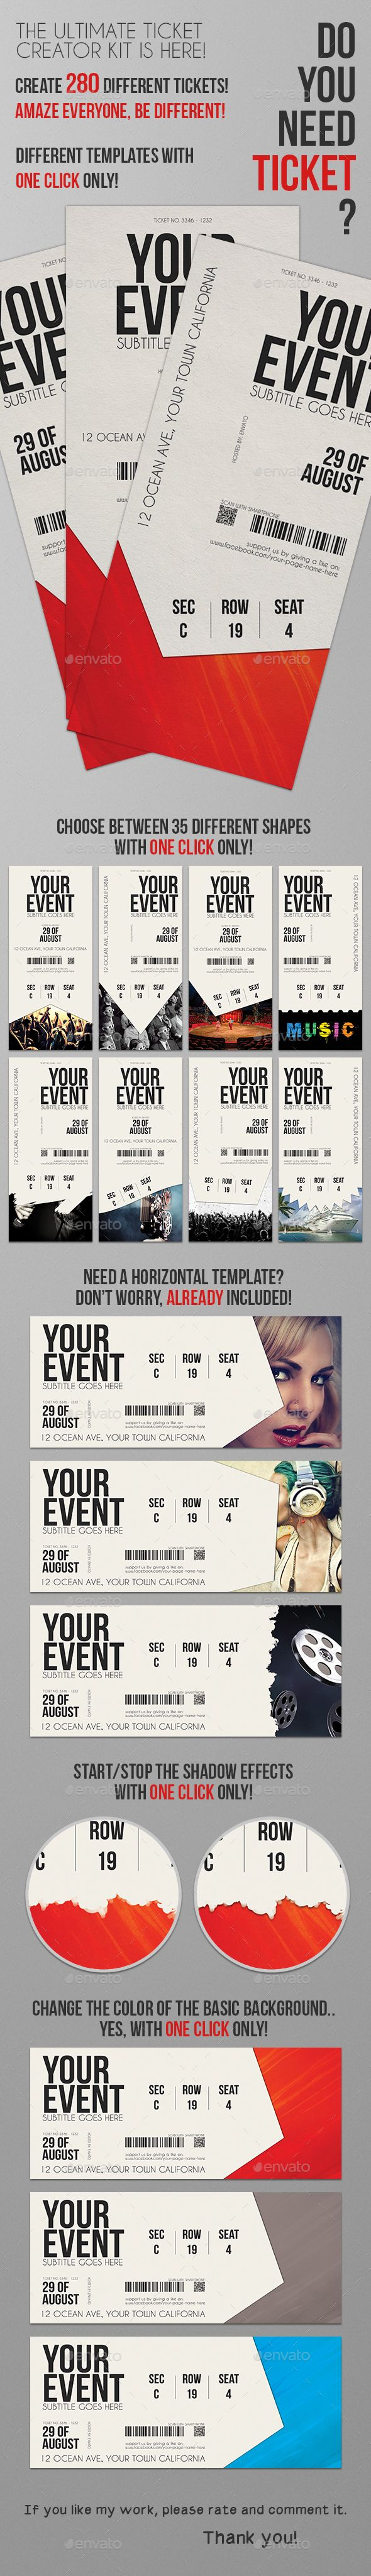 The Ultimate Ticket Creator Kit Template PSD. Download here: http://graphicriver.net/item/the-ultimate-ticket-creator-kit/16516458?ref=ksioks